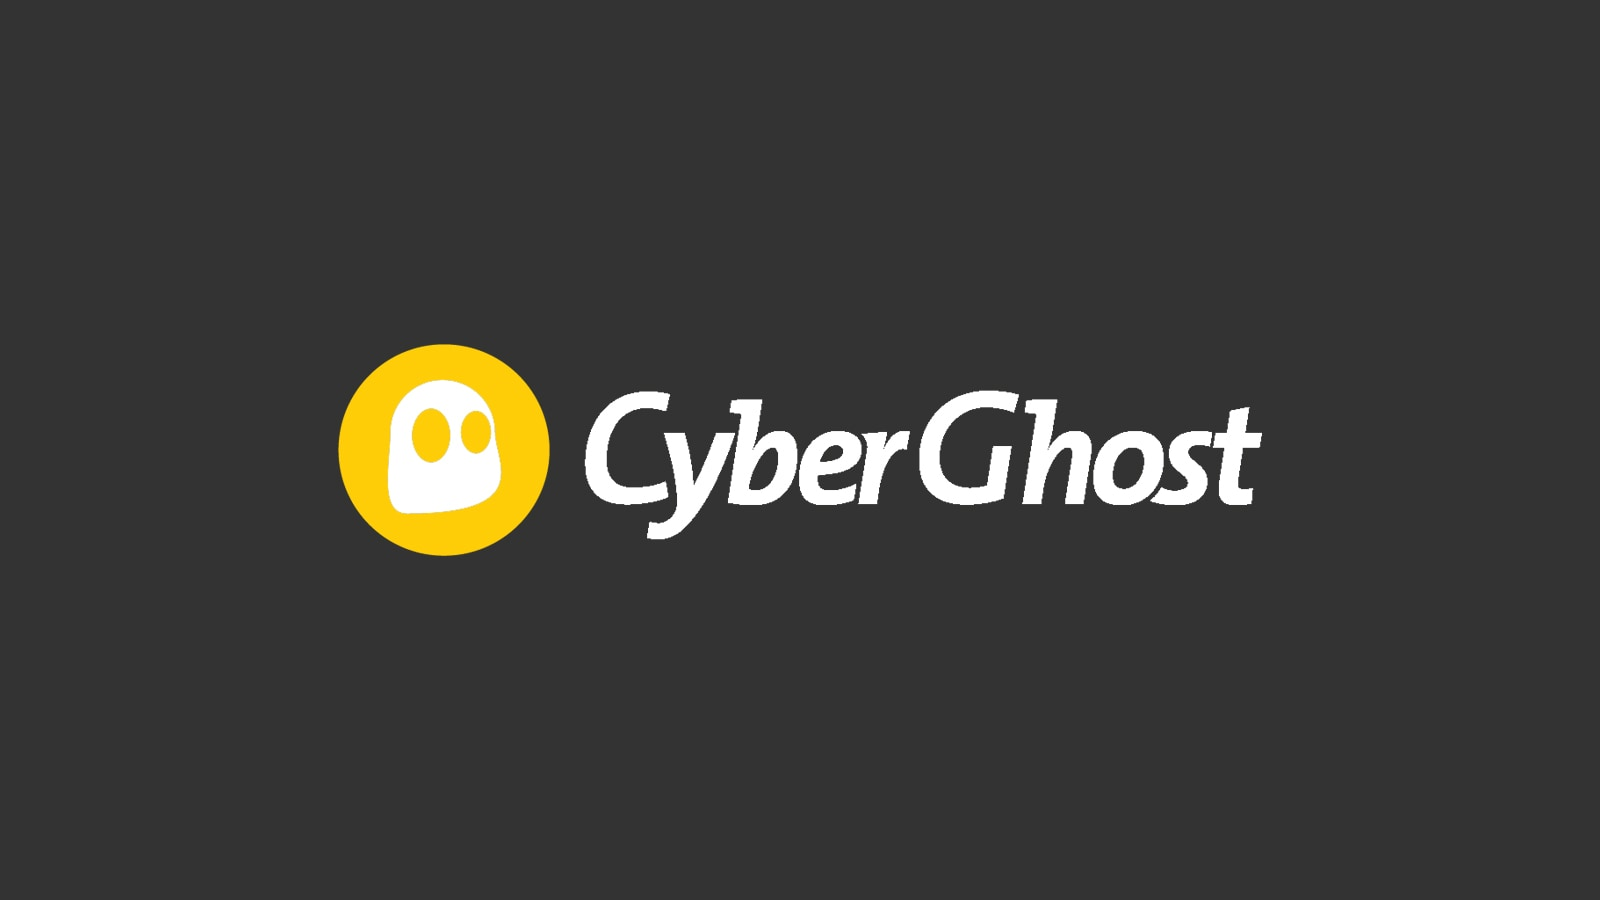 CyberGhost VPN Logo - Cyberghost Vpn Bbc Iplayer Not Working